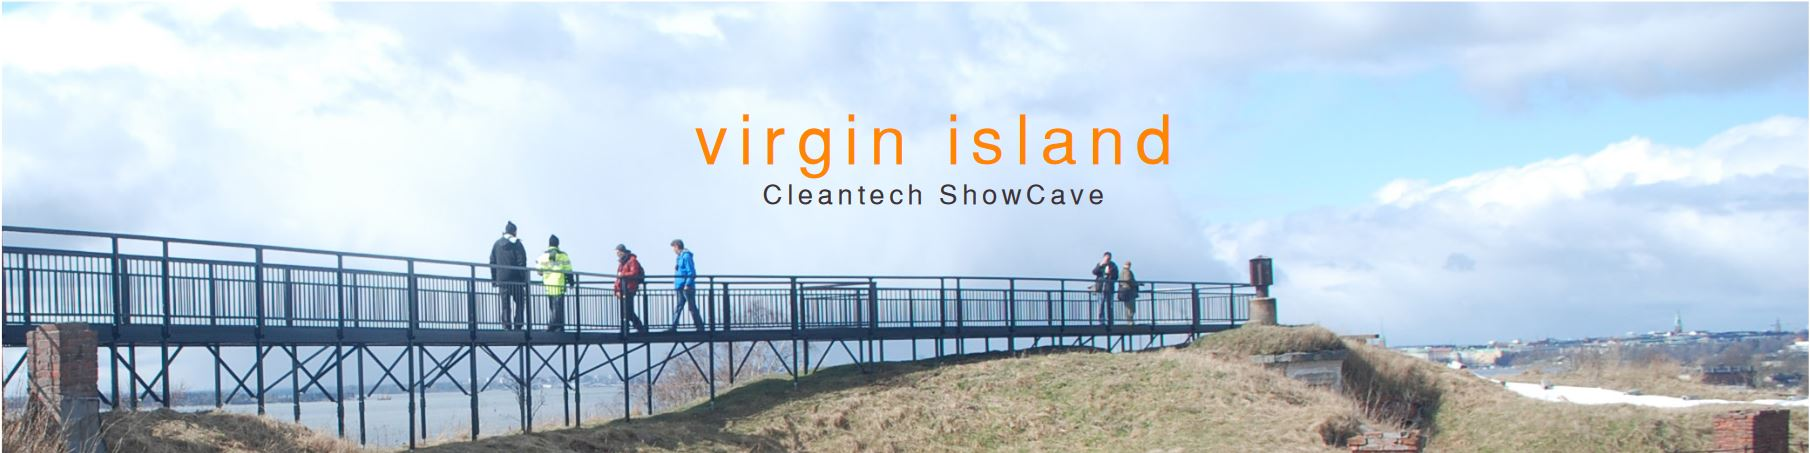 Virgin_Island_Poster_Header_.jpg